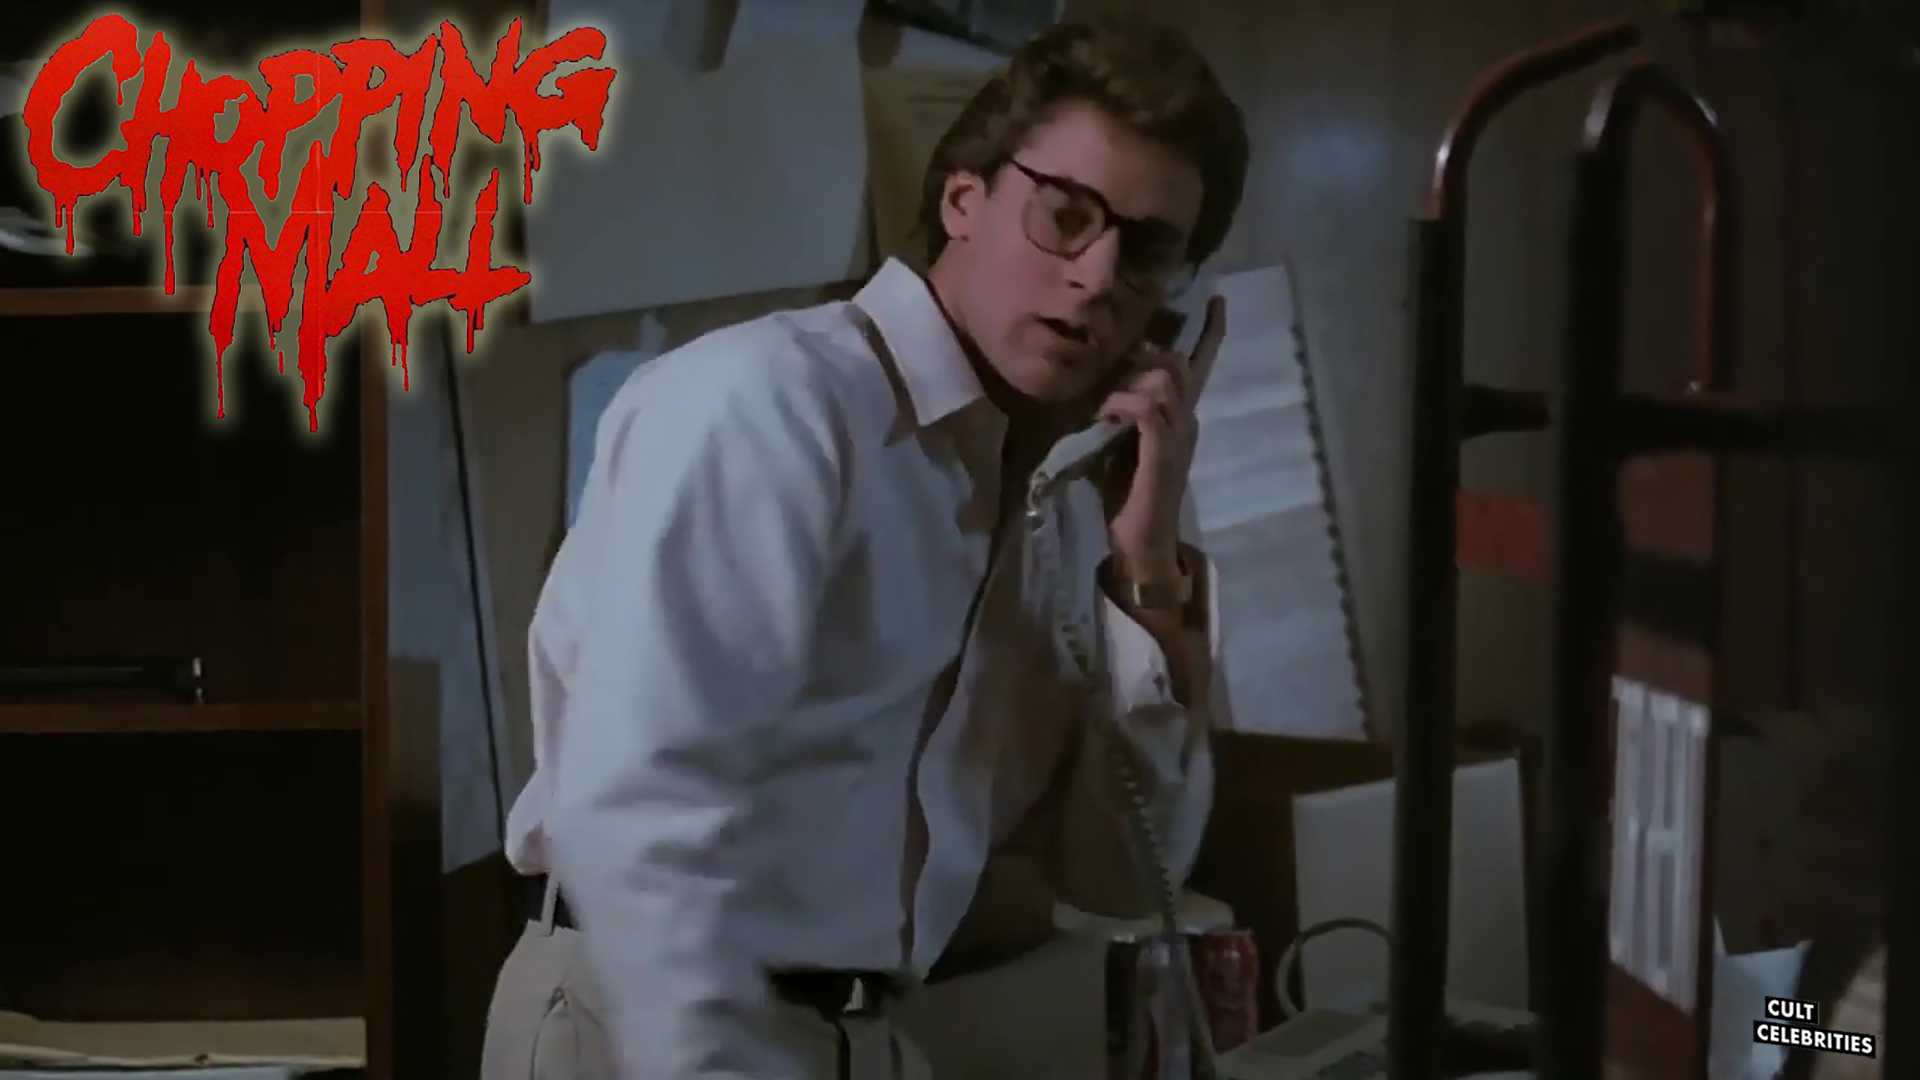 Tony O'Dell in Chopping Mall (1986)